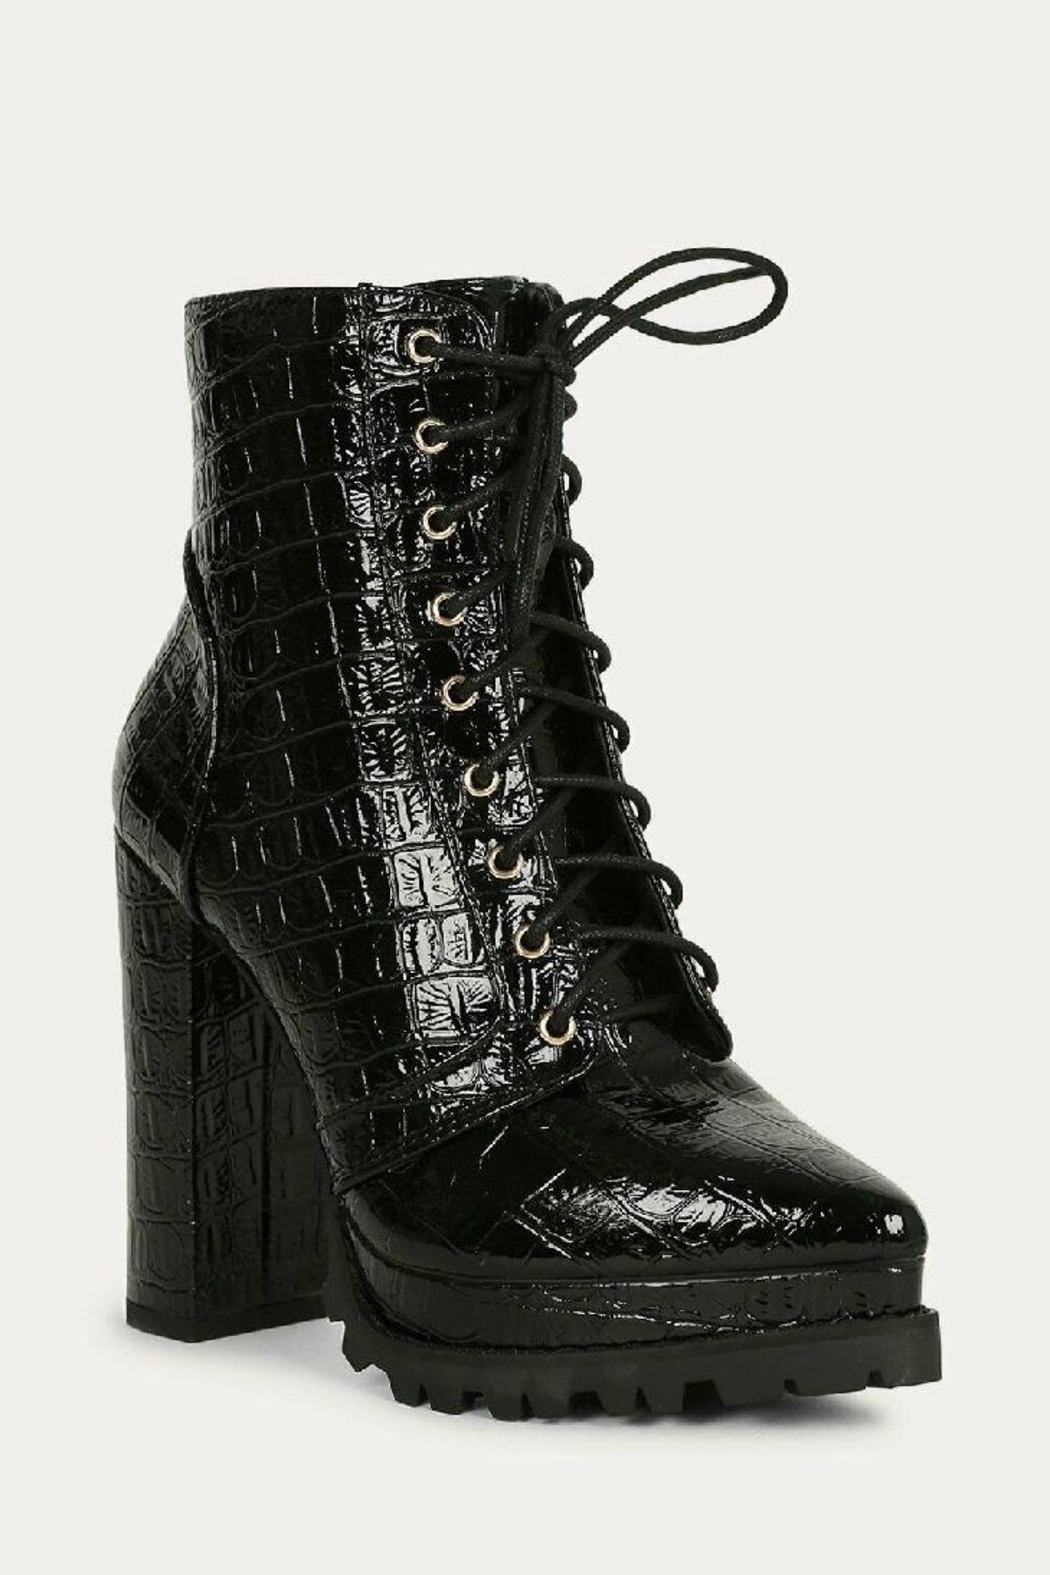 liliana Liliana Irie-1 Lace Up Booties Black Suede - Front Full Image